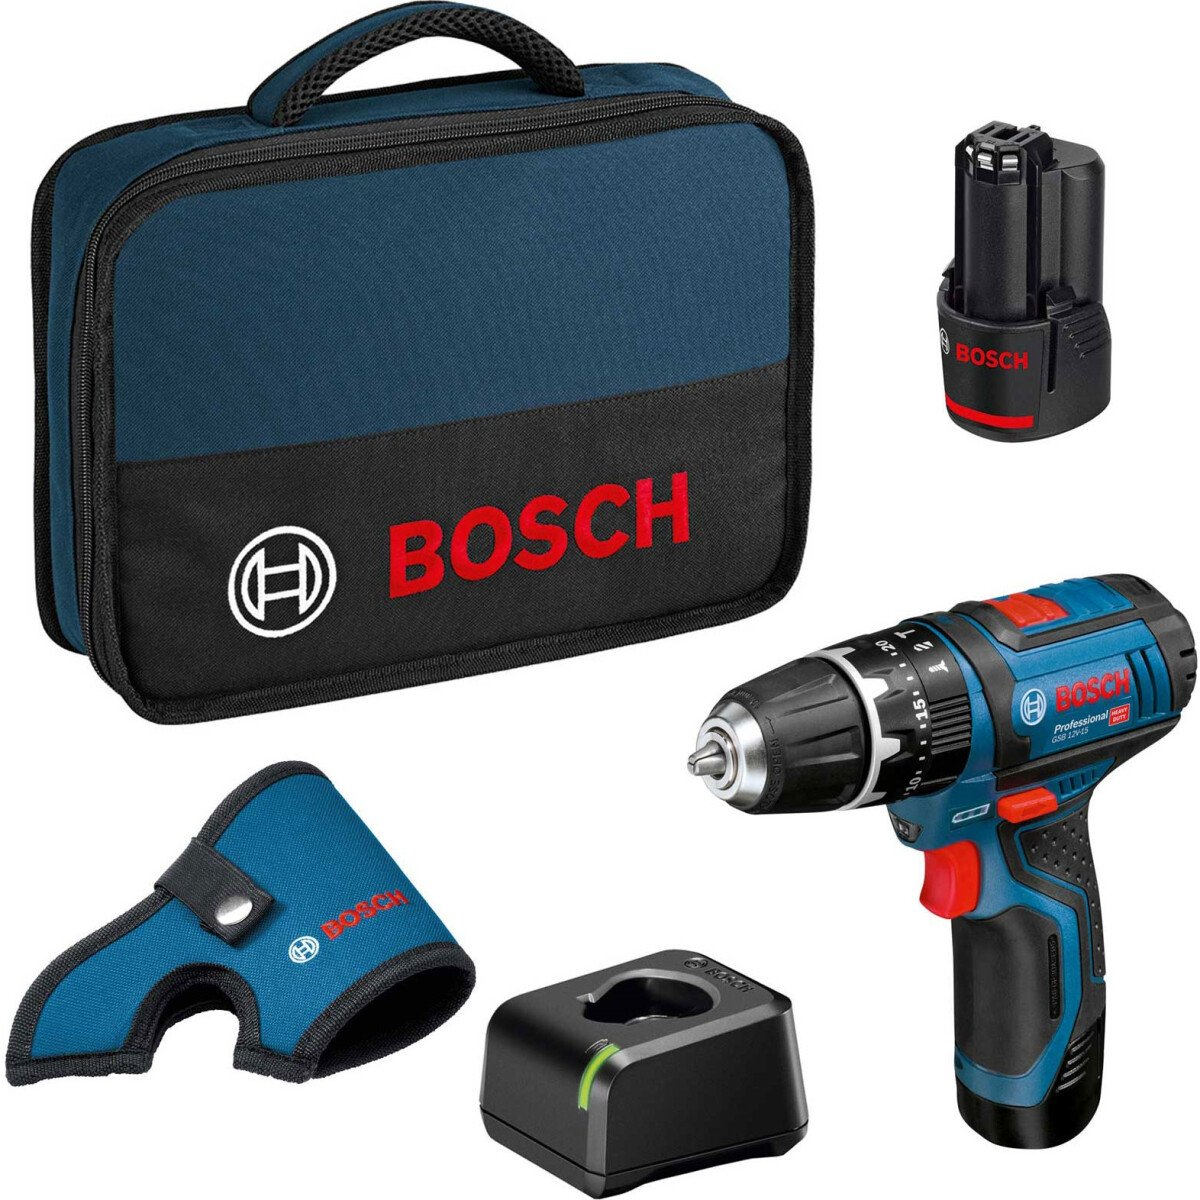 Bosch GSB 12V-15 12v 2 Speed Combi Drill with 2 x 2.0 Ah batteries in Tool Bag